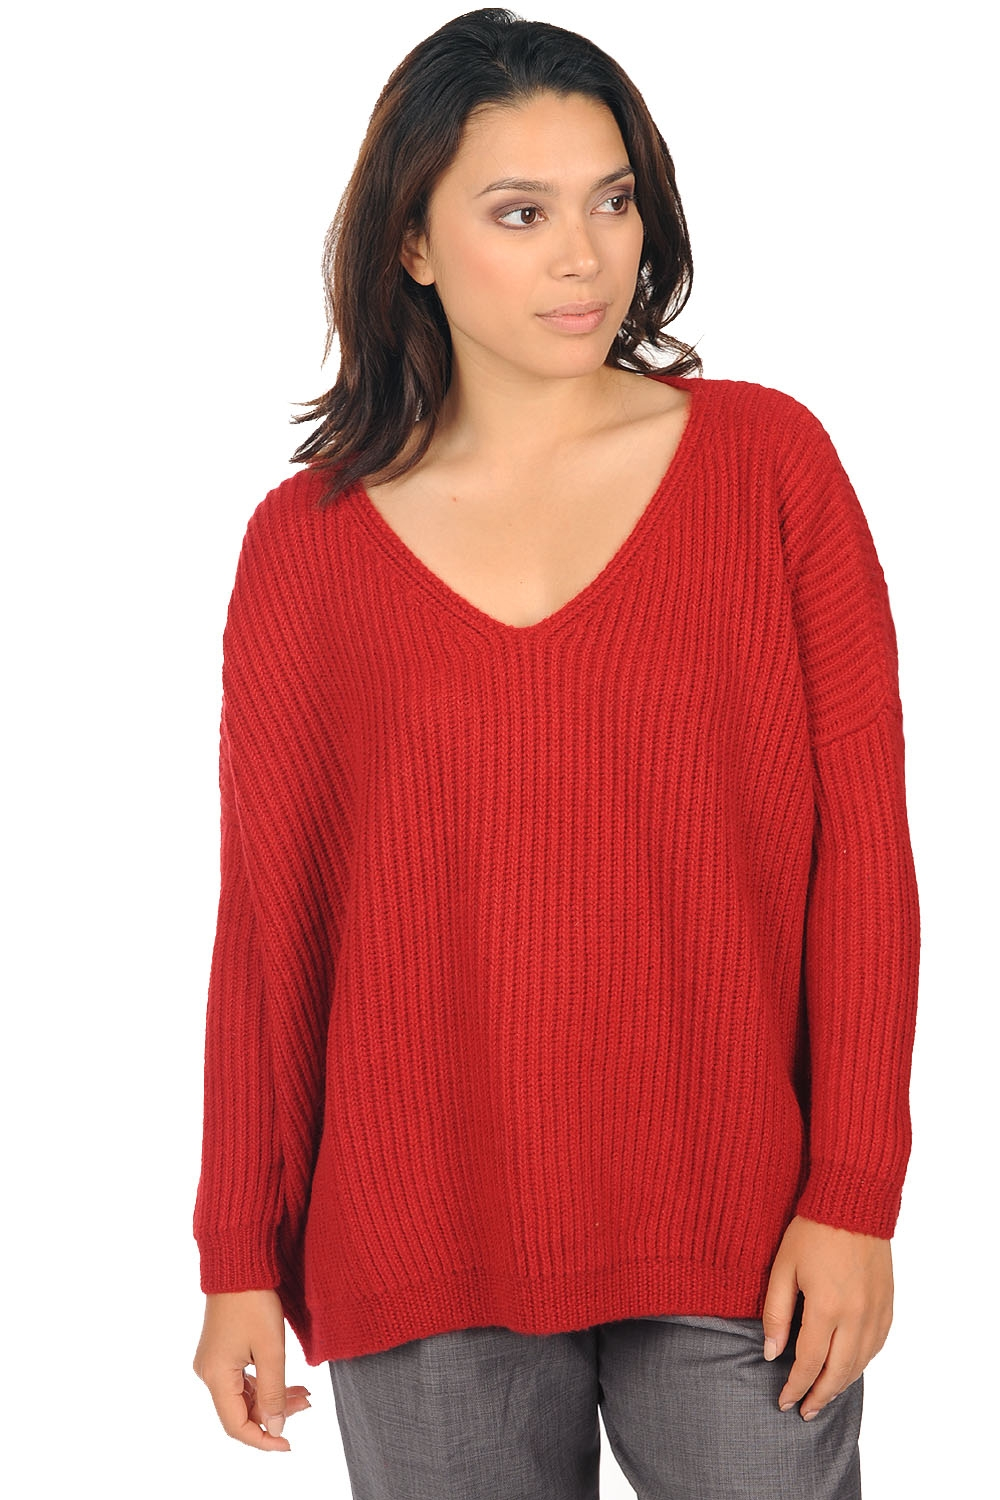 baby alpaca ladies v necks laziza red s2